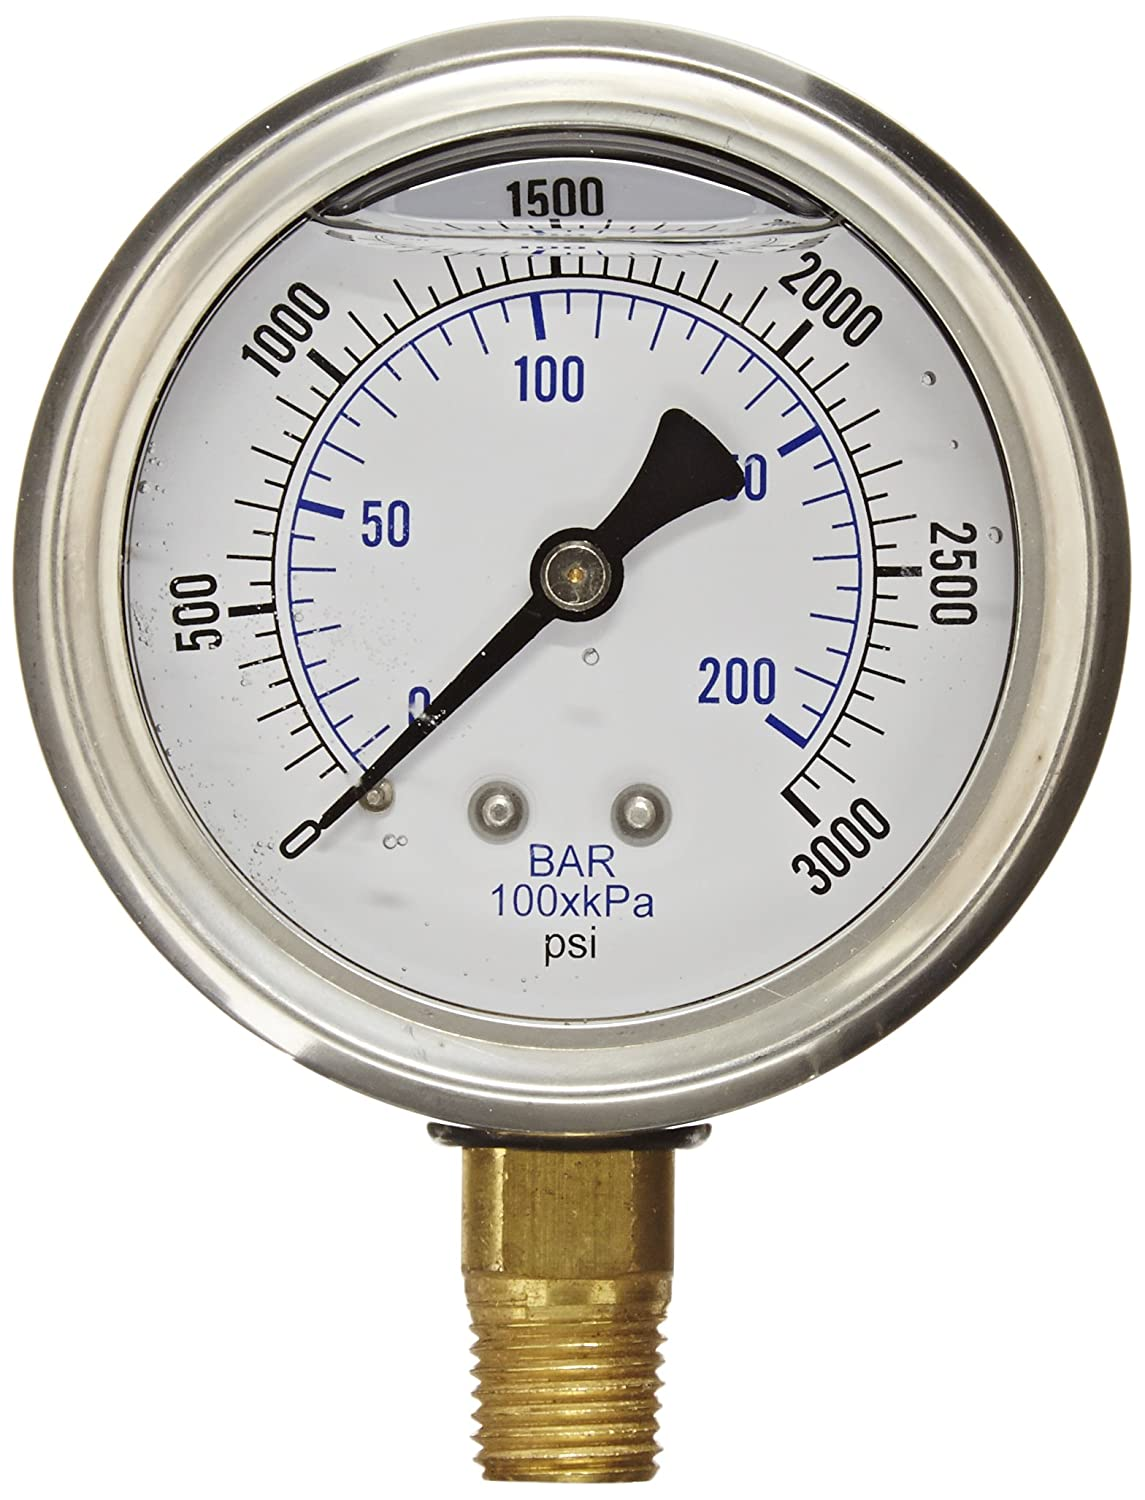 PIC Gauge PRO 201L 254P Glycerin Filled Industrial Bottom Mount Pressure Gauge with Stainless Steel Case Brass Internals Plastic Lens 2 1 2 Dial Size 1 4 Male NPT 0 3000 psi